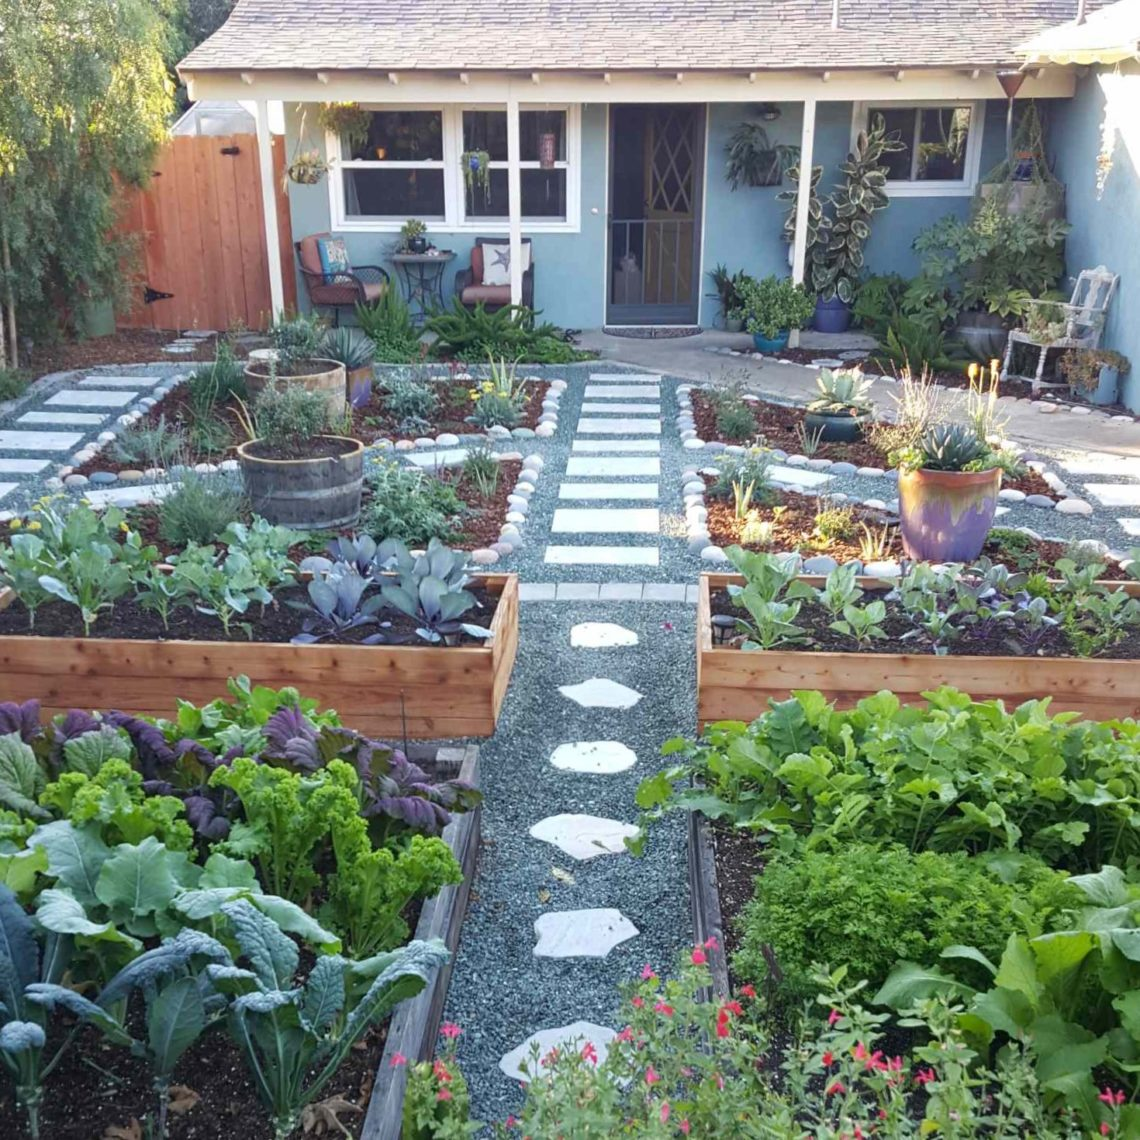 How To Start A Garden: 101 ~ Homestead and Chill Raised Garden Plan Homesteaders on raised herb box wooden design, camping plans, raised planters, raised gardens for handicapped, raised fish ponds designs, raised gardens for seniors, raised container gardening, raised bed lasagna gardening, yoga plans,